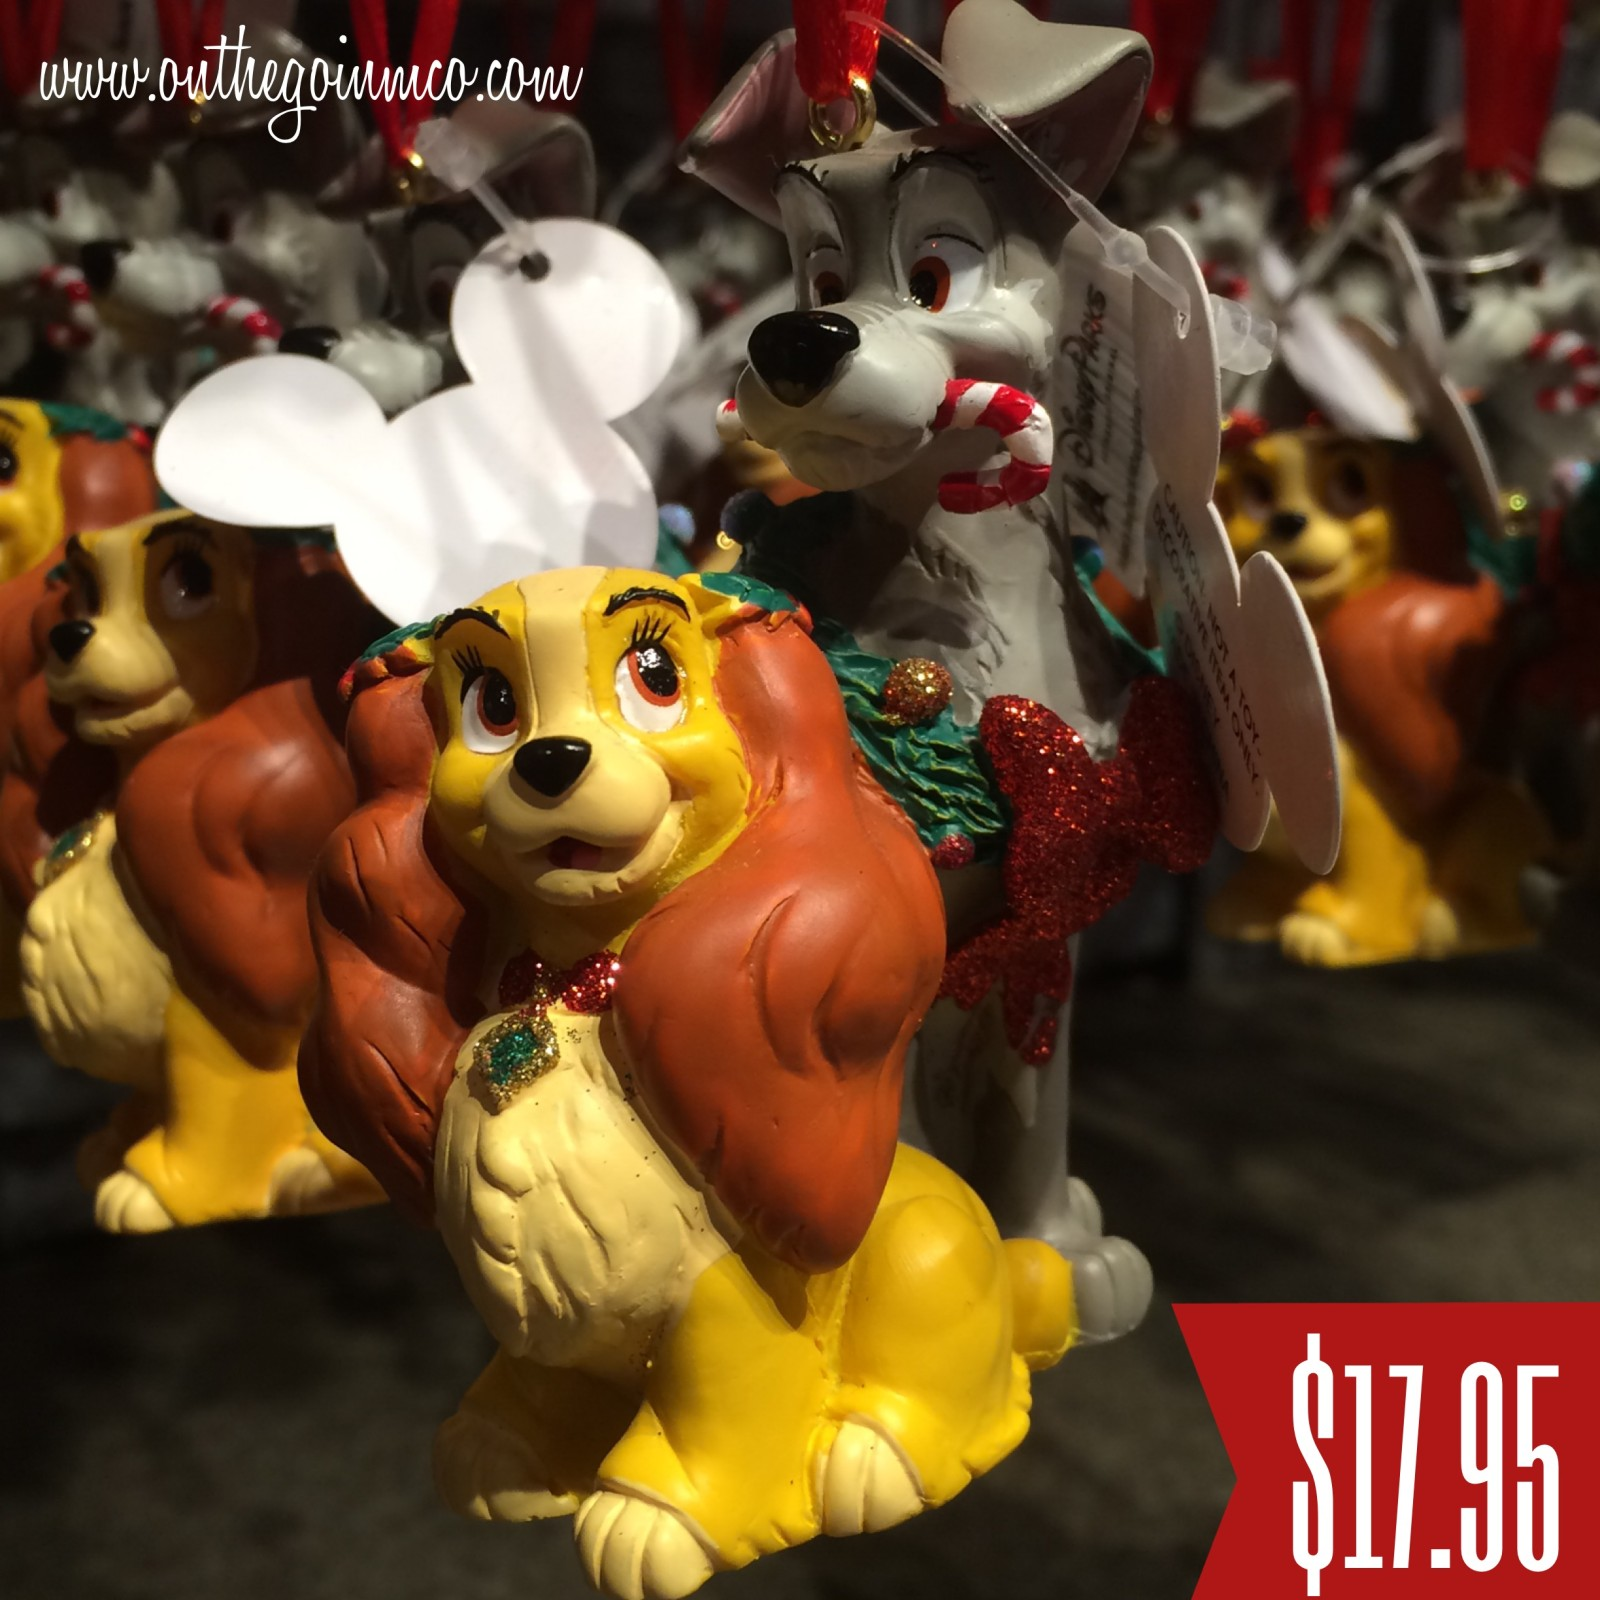 Walt Disney World Christmas Ornaments - Lady and the Tramp